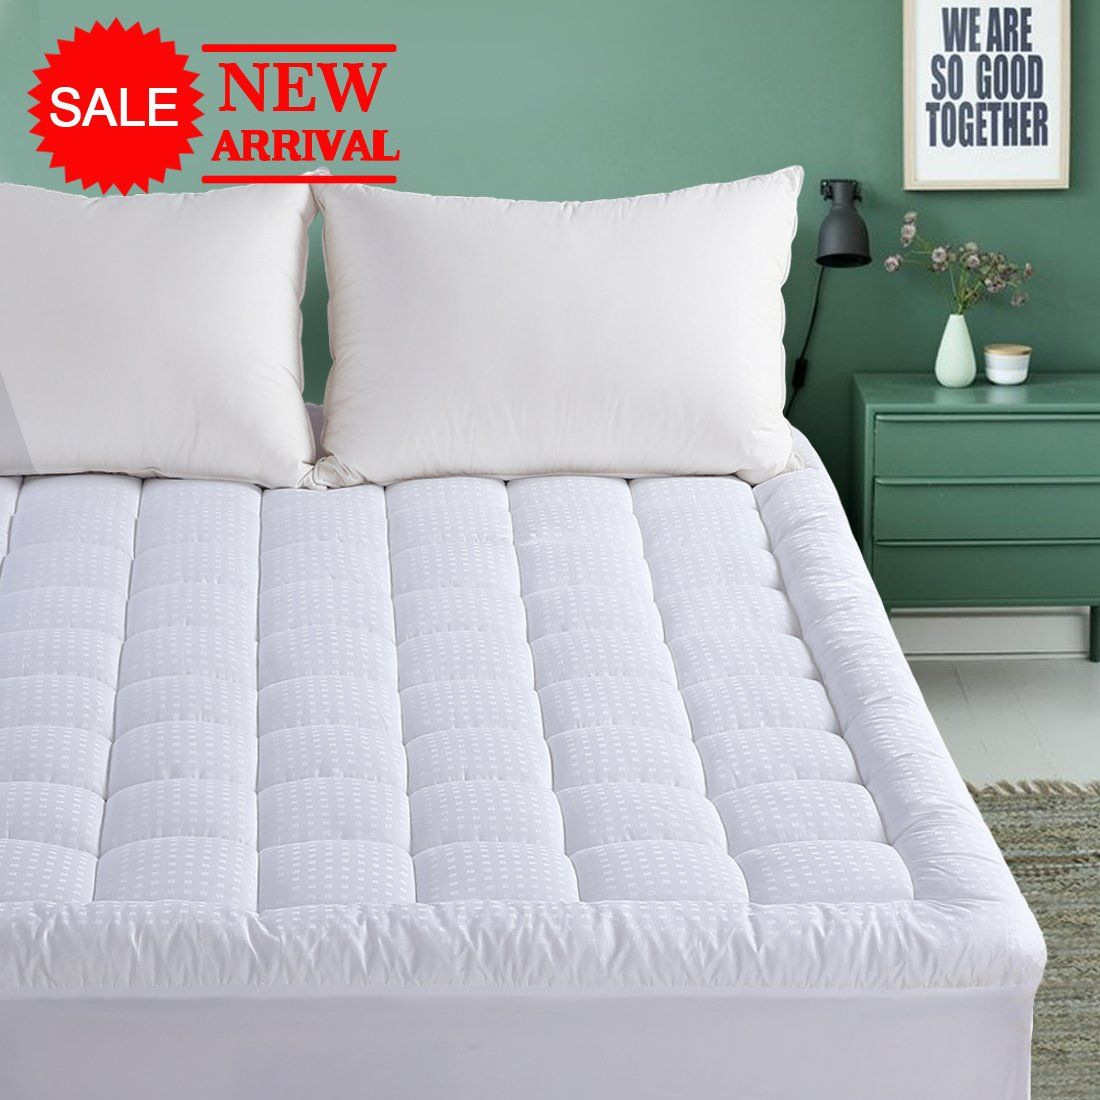 Queen Mattress Pad 300tc Down Alternative Pillow Top Mattress